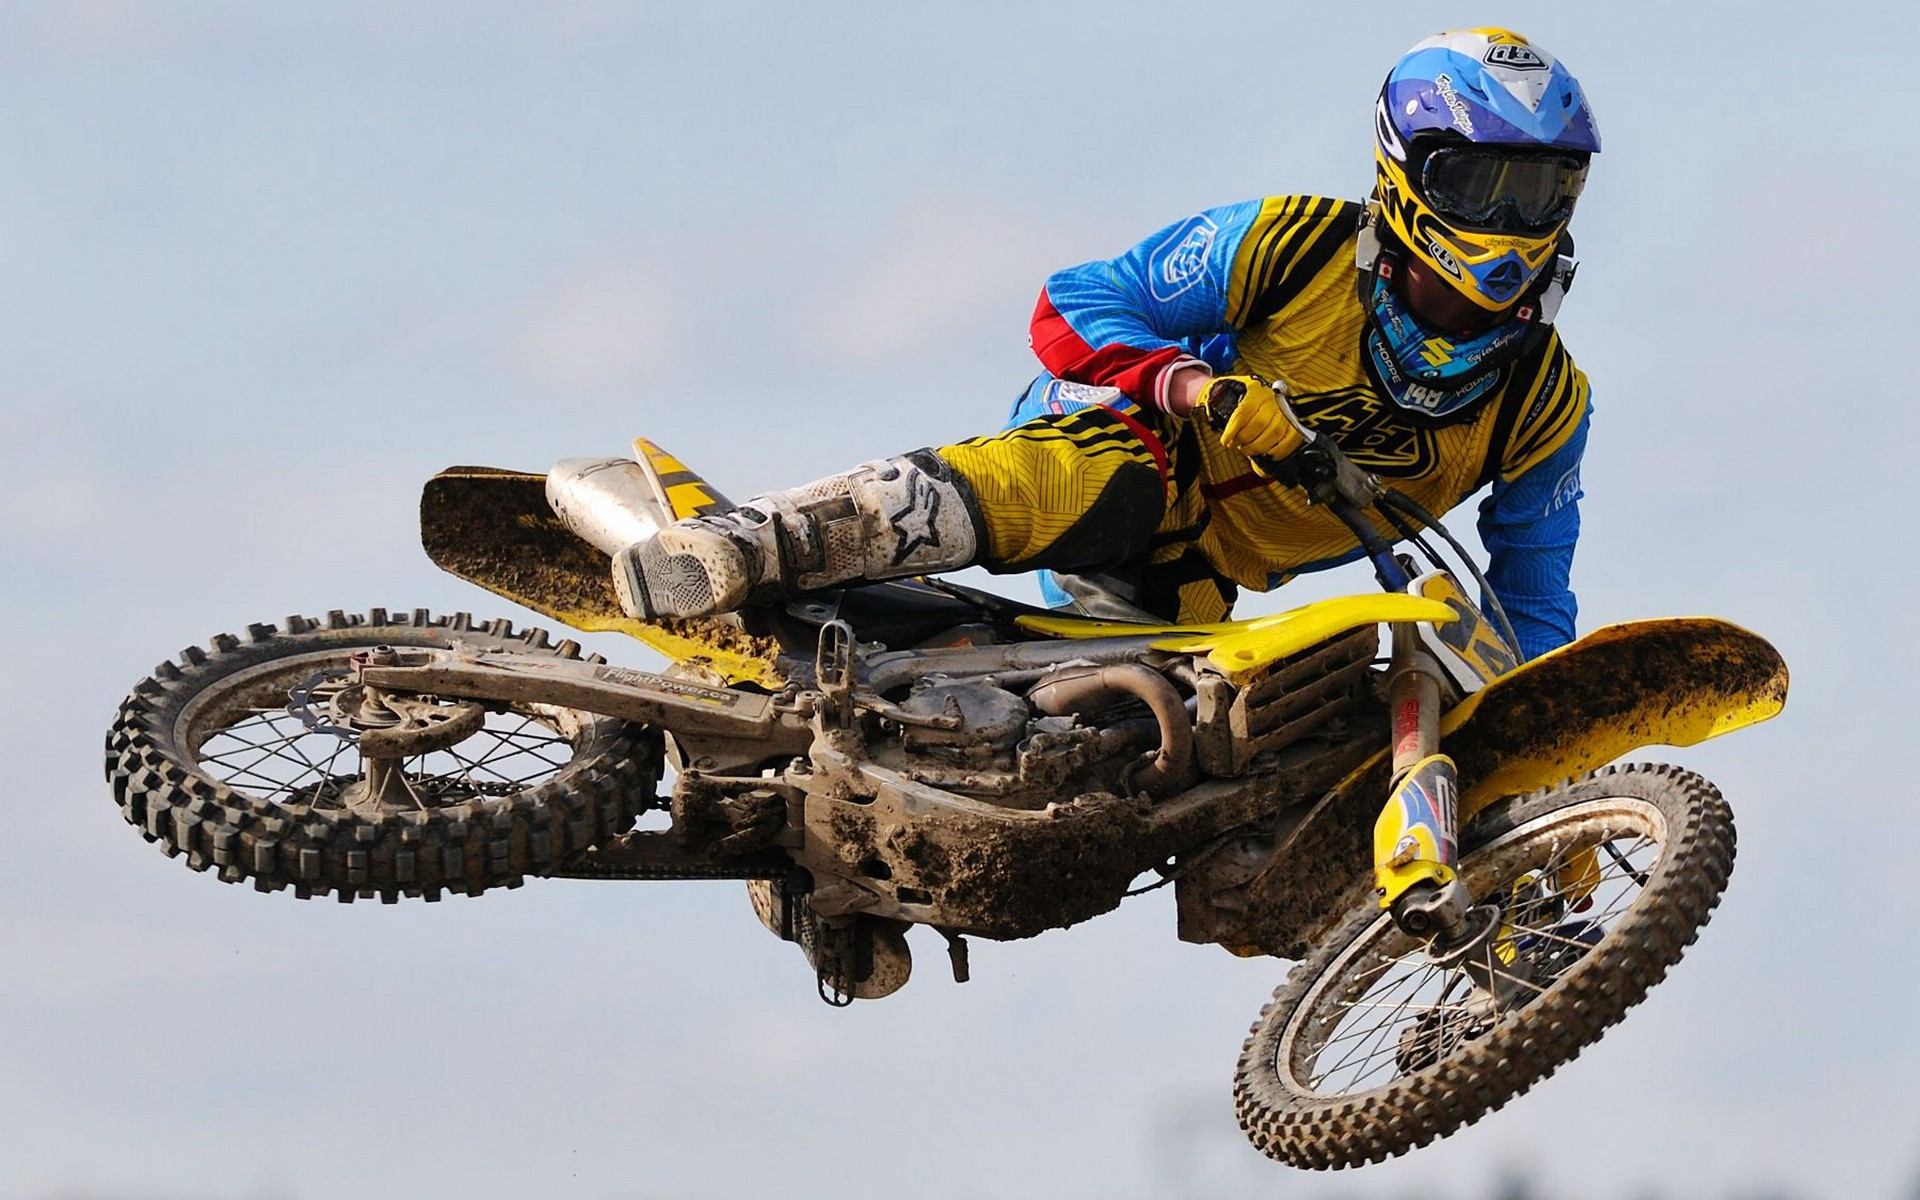 amazing yamaha dirt bike wallpapers free download | bike ...